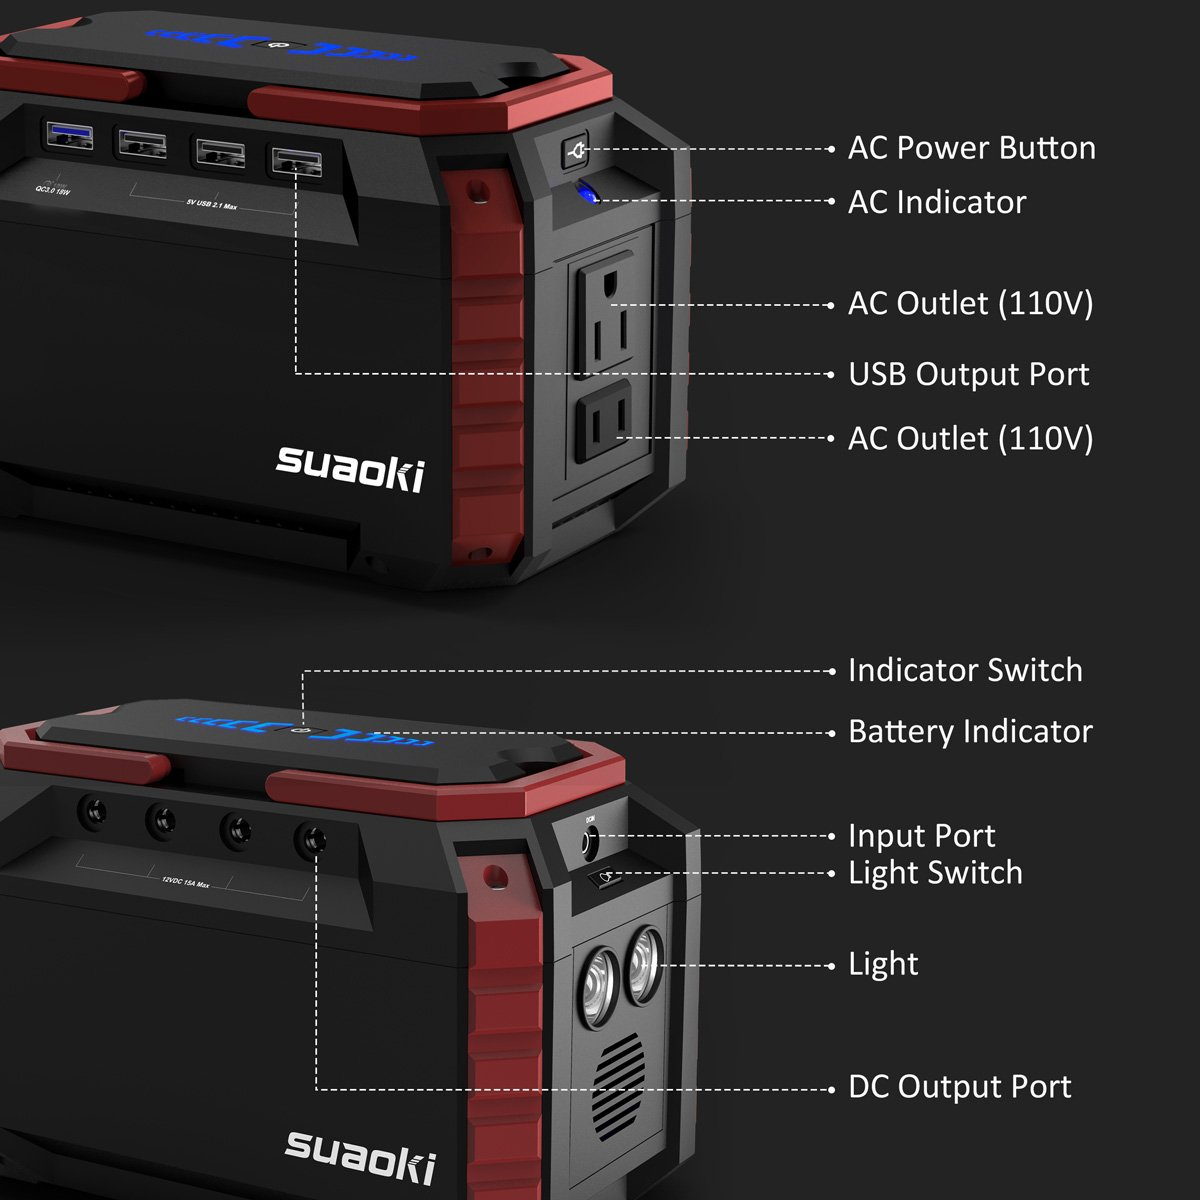 Suaoki Portable Power Station 150wh Quiet Gas Free 25 Floppy Drive Wind Generator Construction Details Camping Qc30 Ups Lithium Supply With Dual 110v Ac Outlet 4 Dc Ports